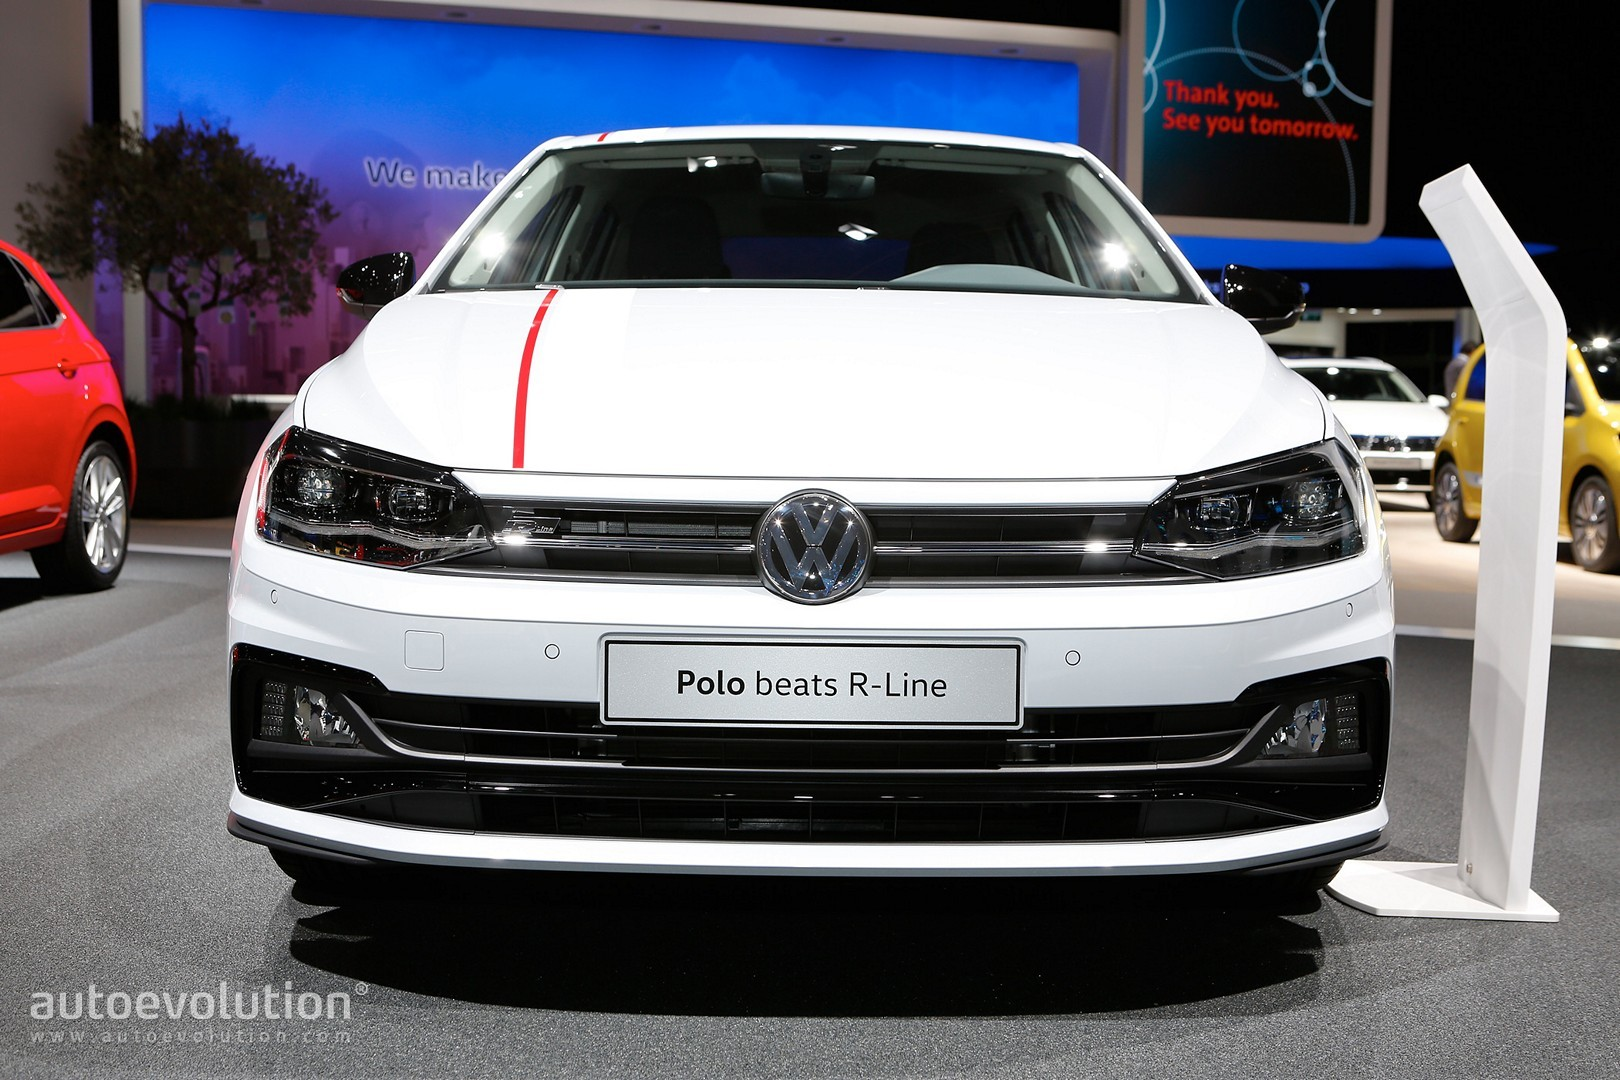 2018 vw polo beats r line is unusually colorful in for Interieur nouvelle polo